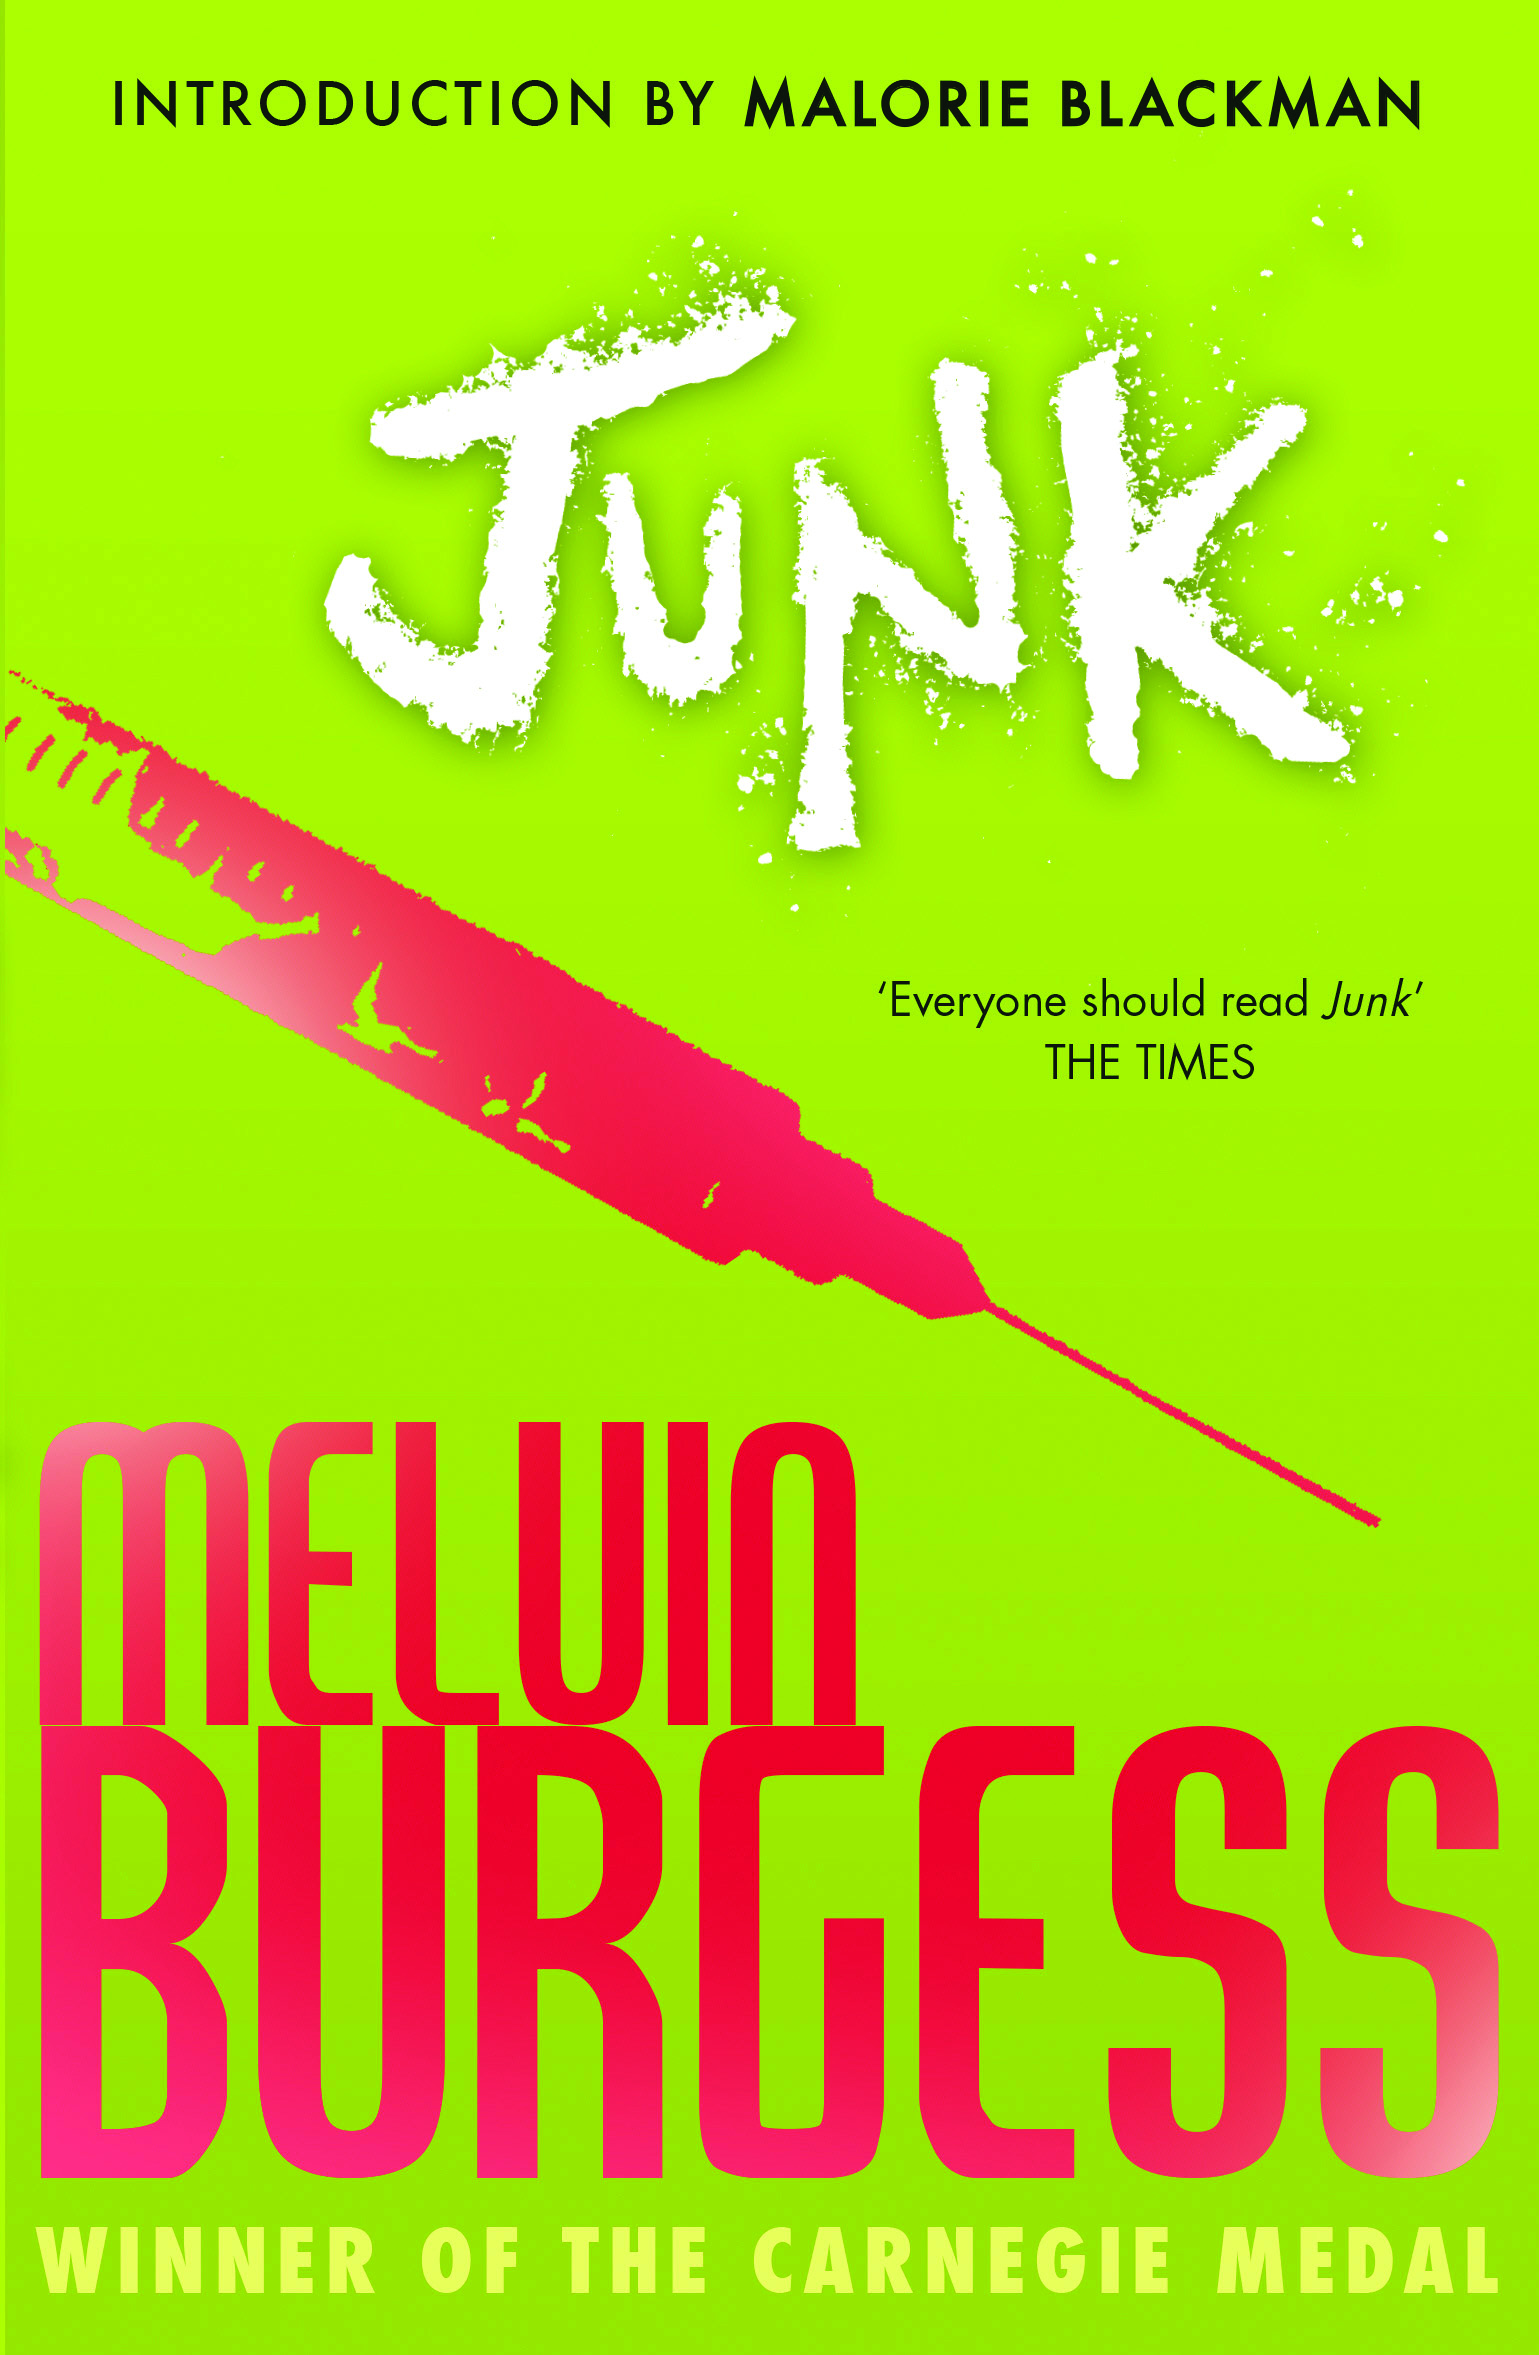 what is junk by melvin burgess essay Melvin burgess acknowledged that junk would push the boundaries of what is considered writing for young people discuss how and why junk divided opinions.